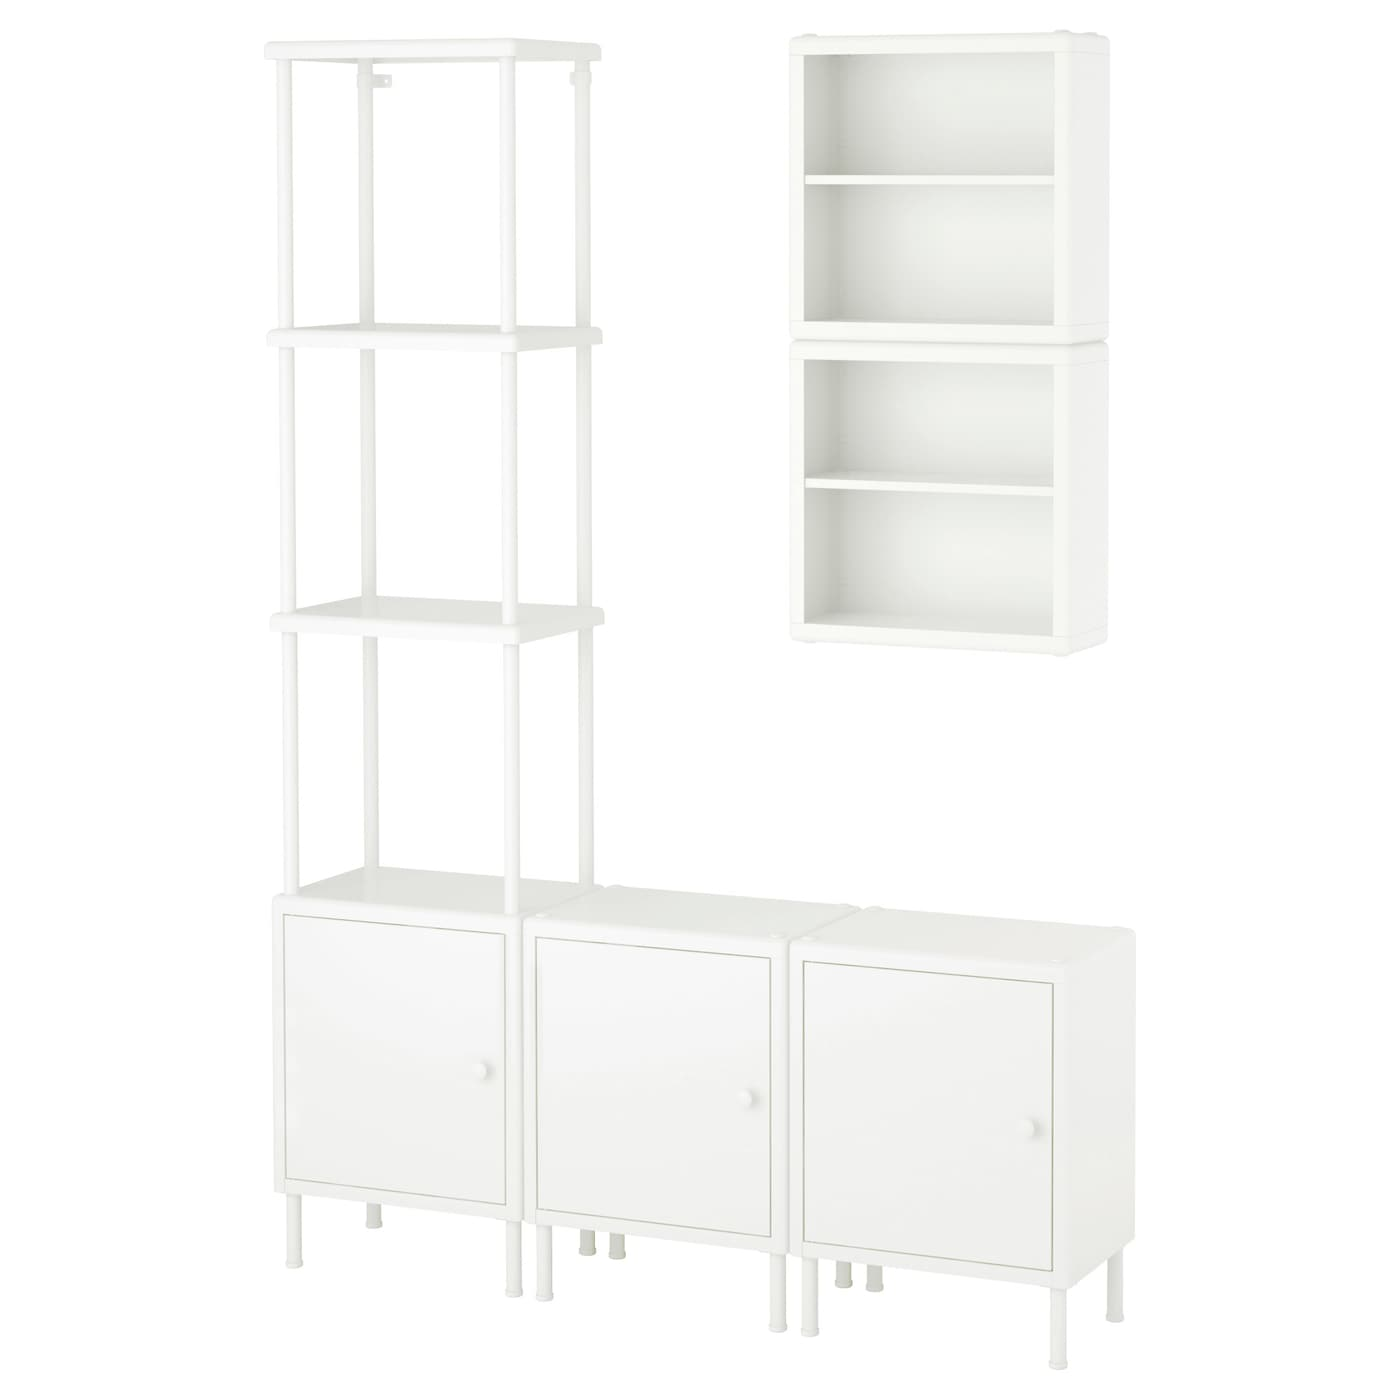 decorating shelf canvas ikea home lids captivating bins wall ideas modular cube with cubes spaces shelving for storage small shelves boxes furniture bookcase bookshelf baskets inspiring unit